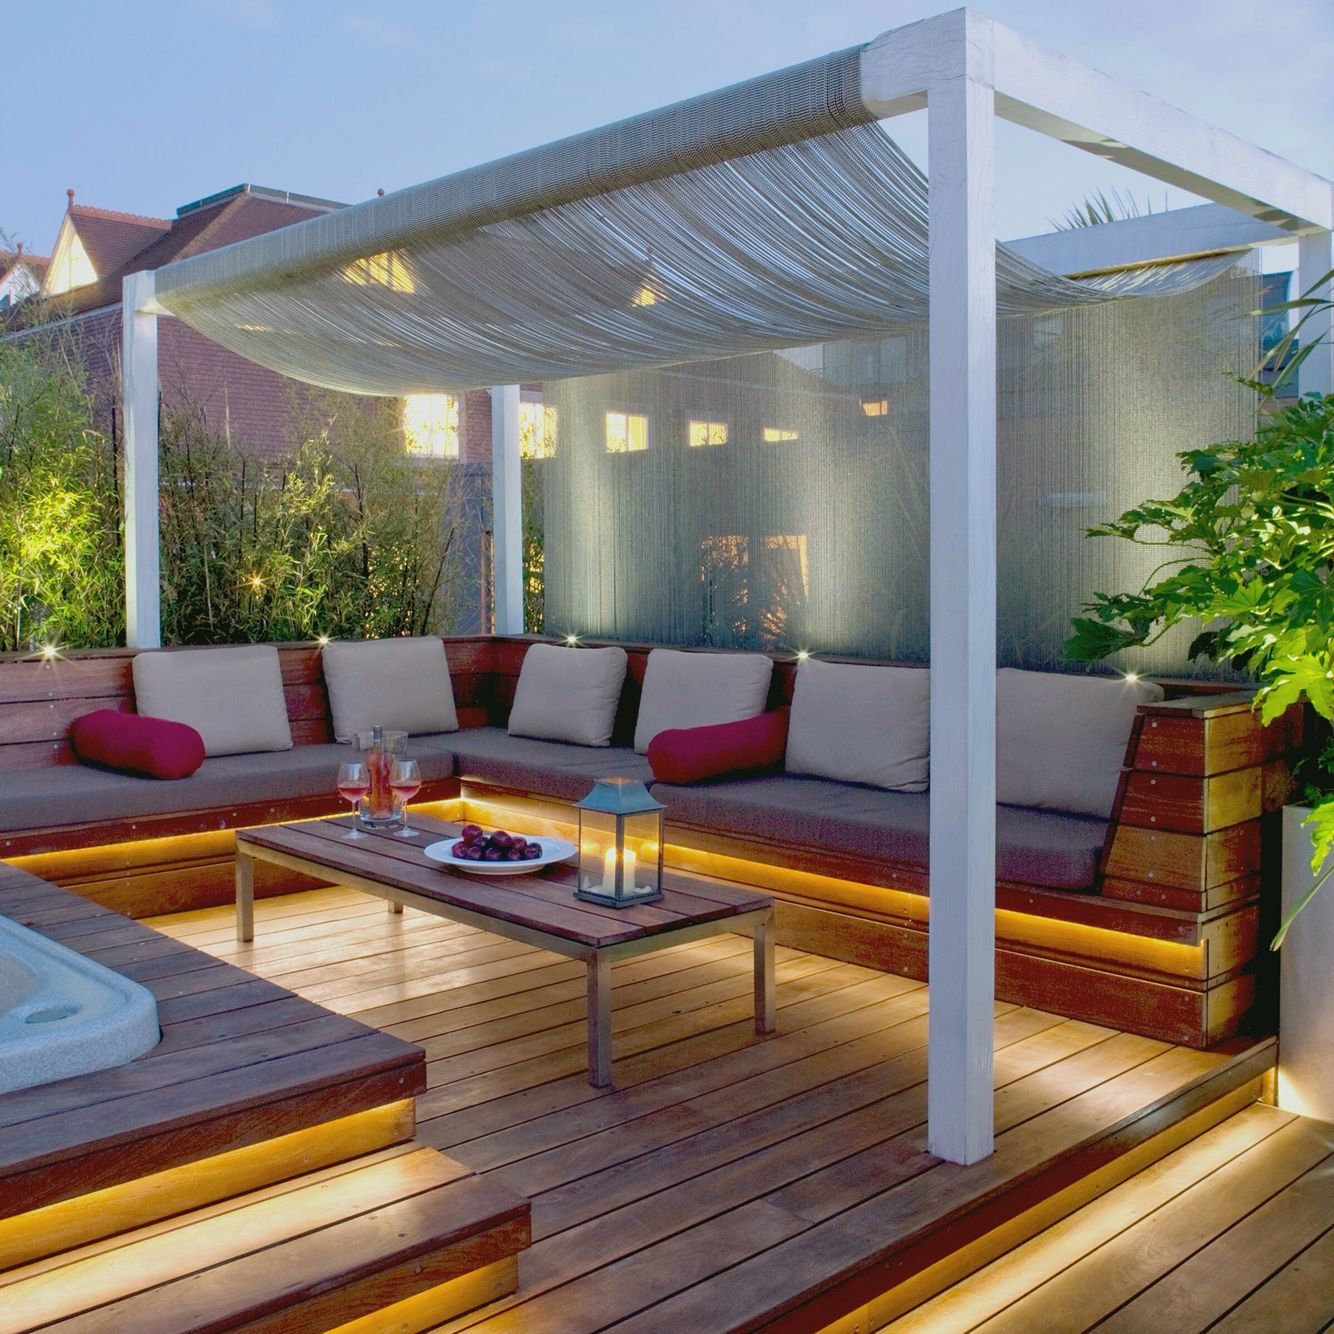 Roof Terrace Landscape Decking Hot Tub Jacuzzi External Concealed Lighting  Planting Bamboo Exotic Frame Cushions Red